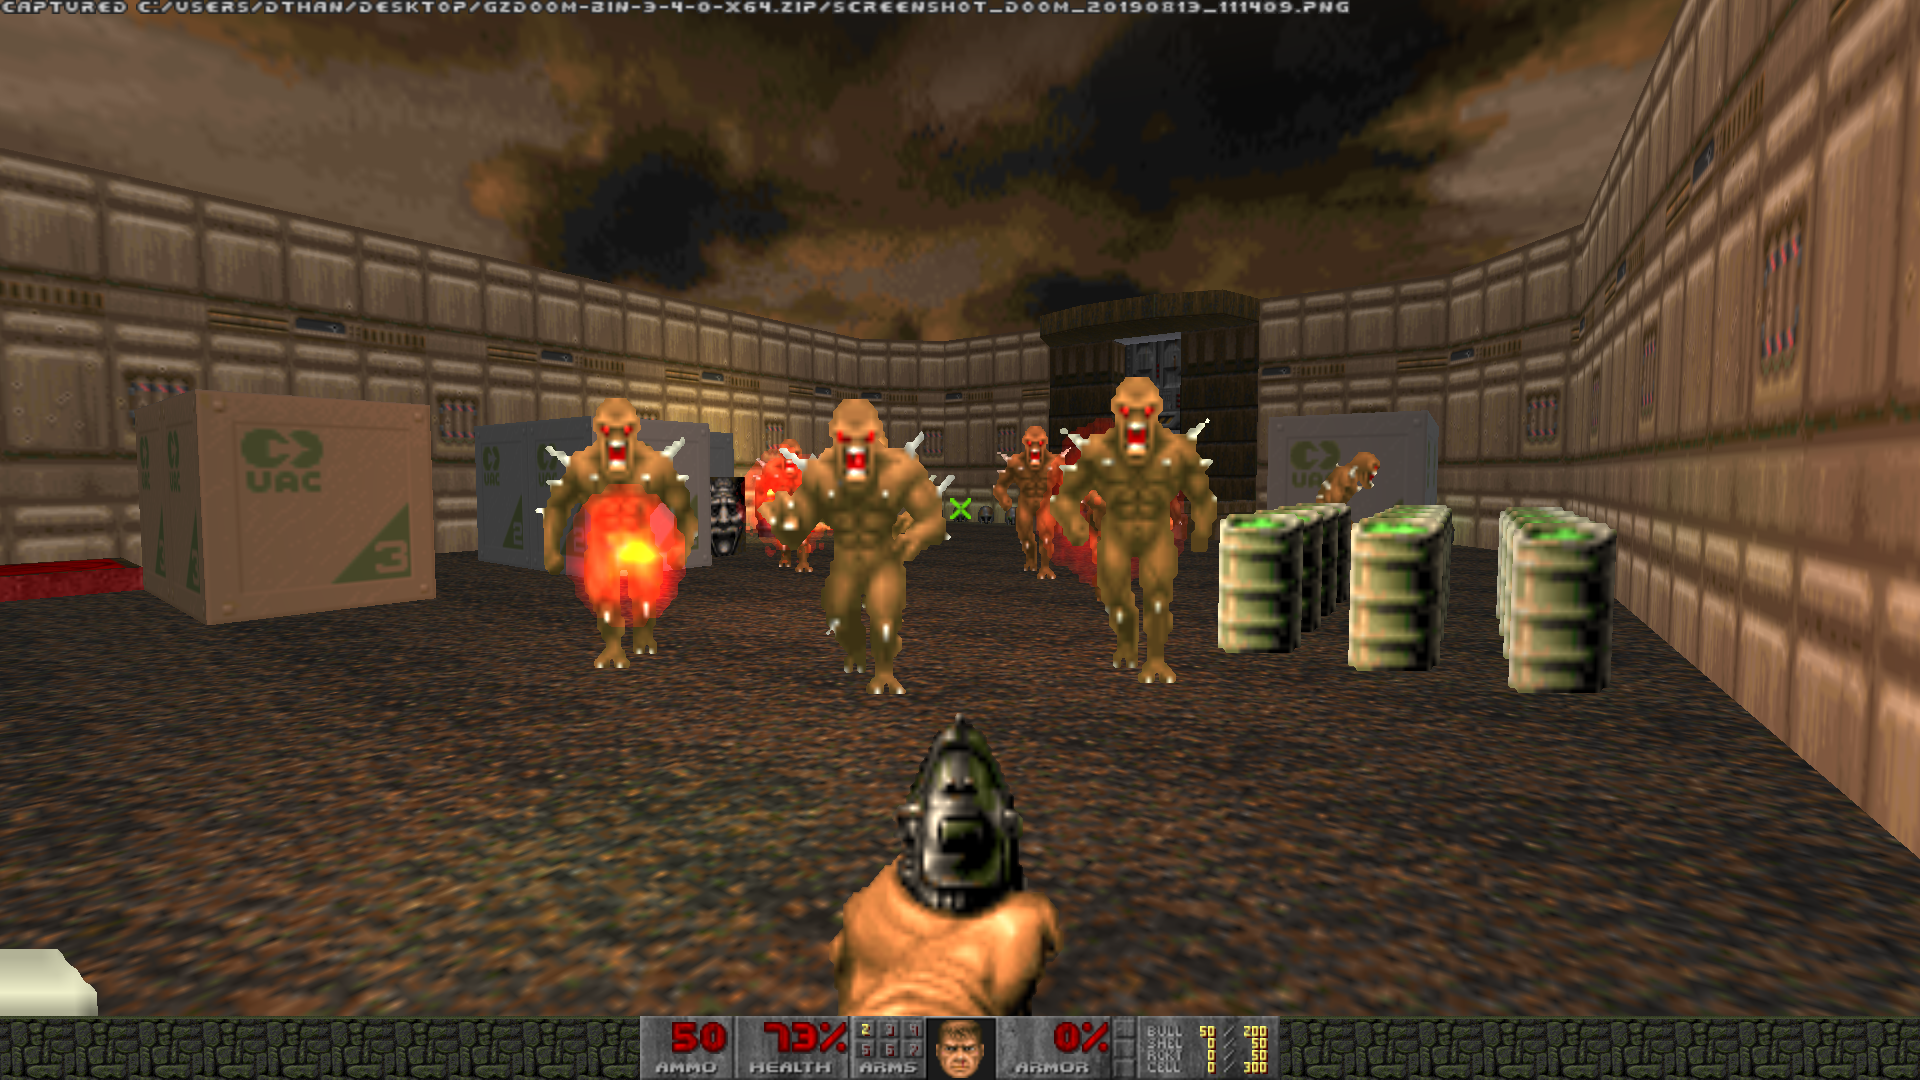 Screenshot_Doom_20190813_111411.png